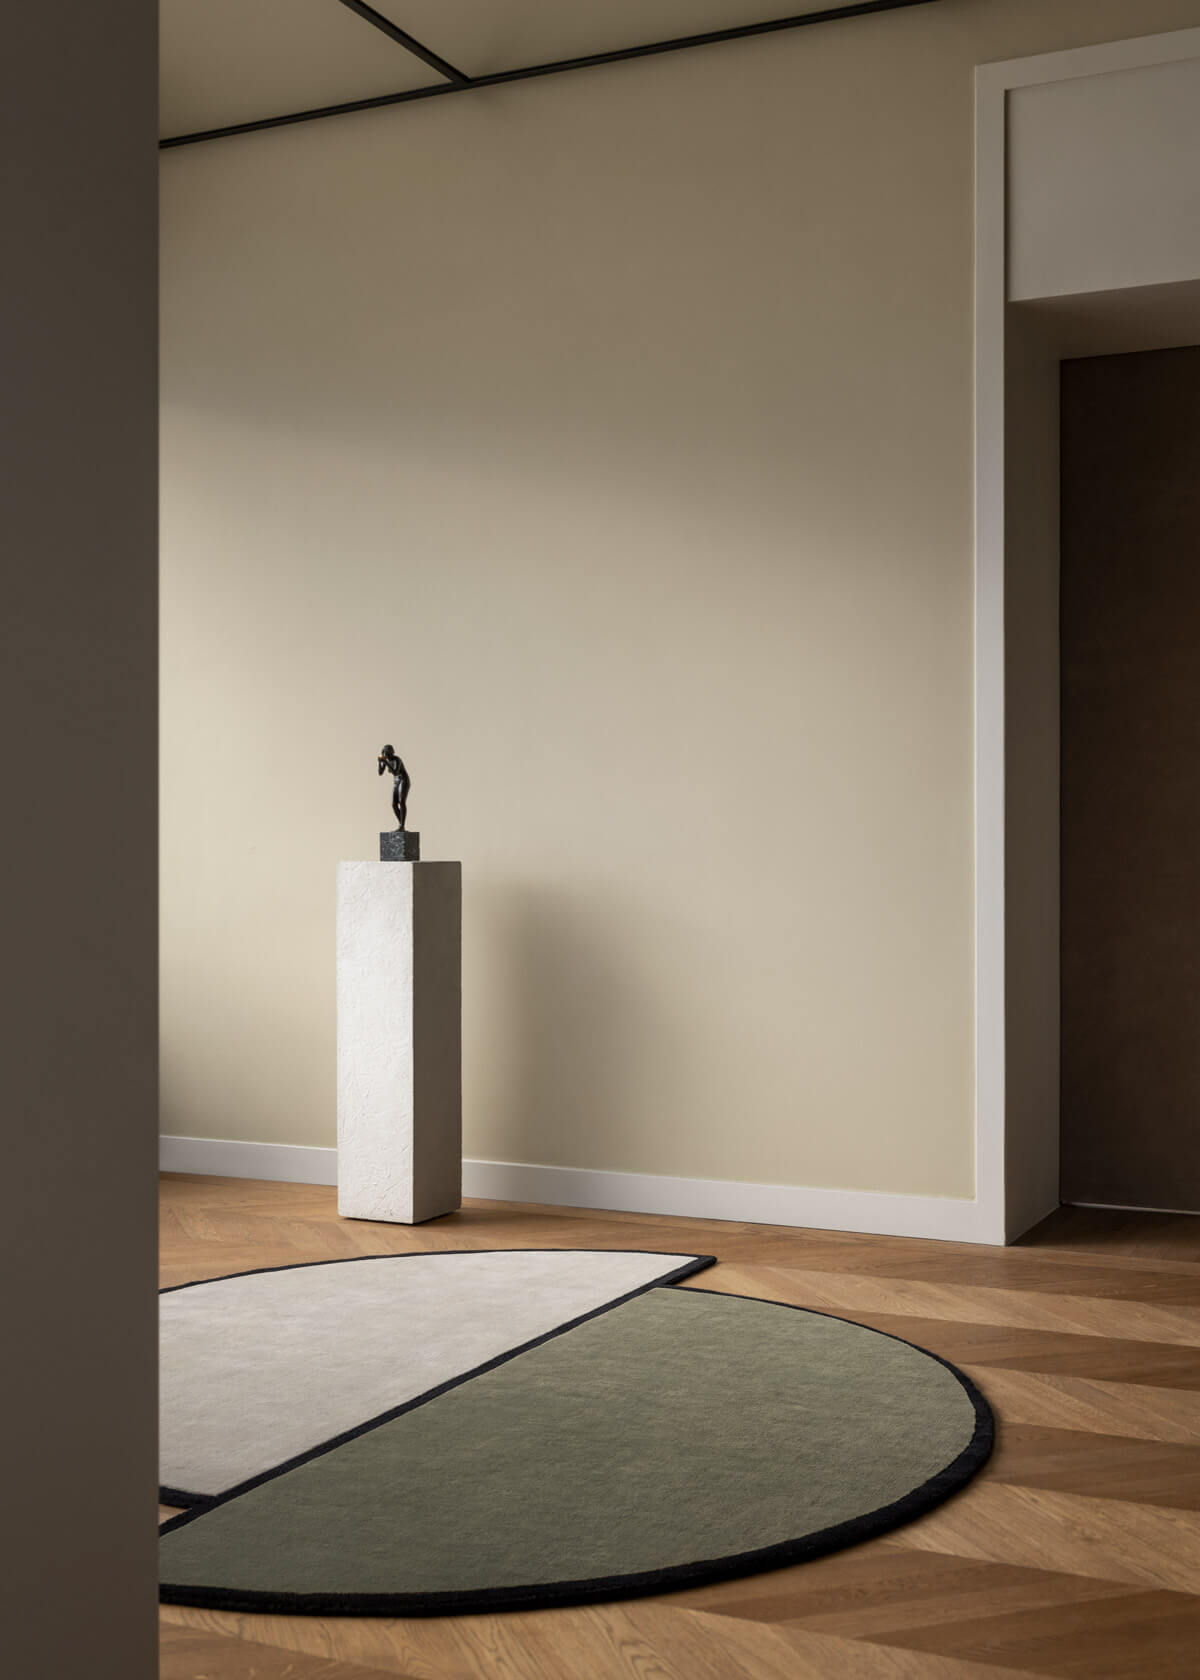 The rug AML 03 in a warm room with a sculpture on a pedestal in the back.,